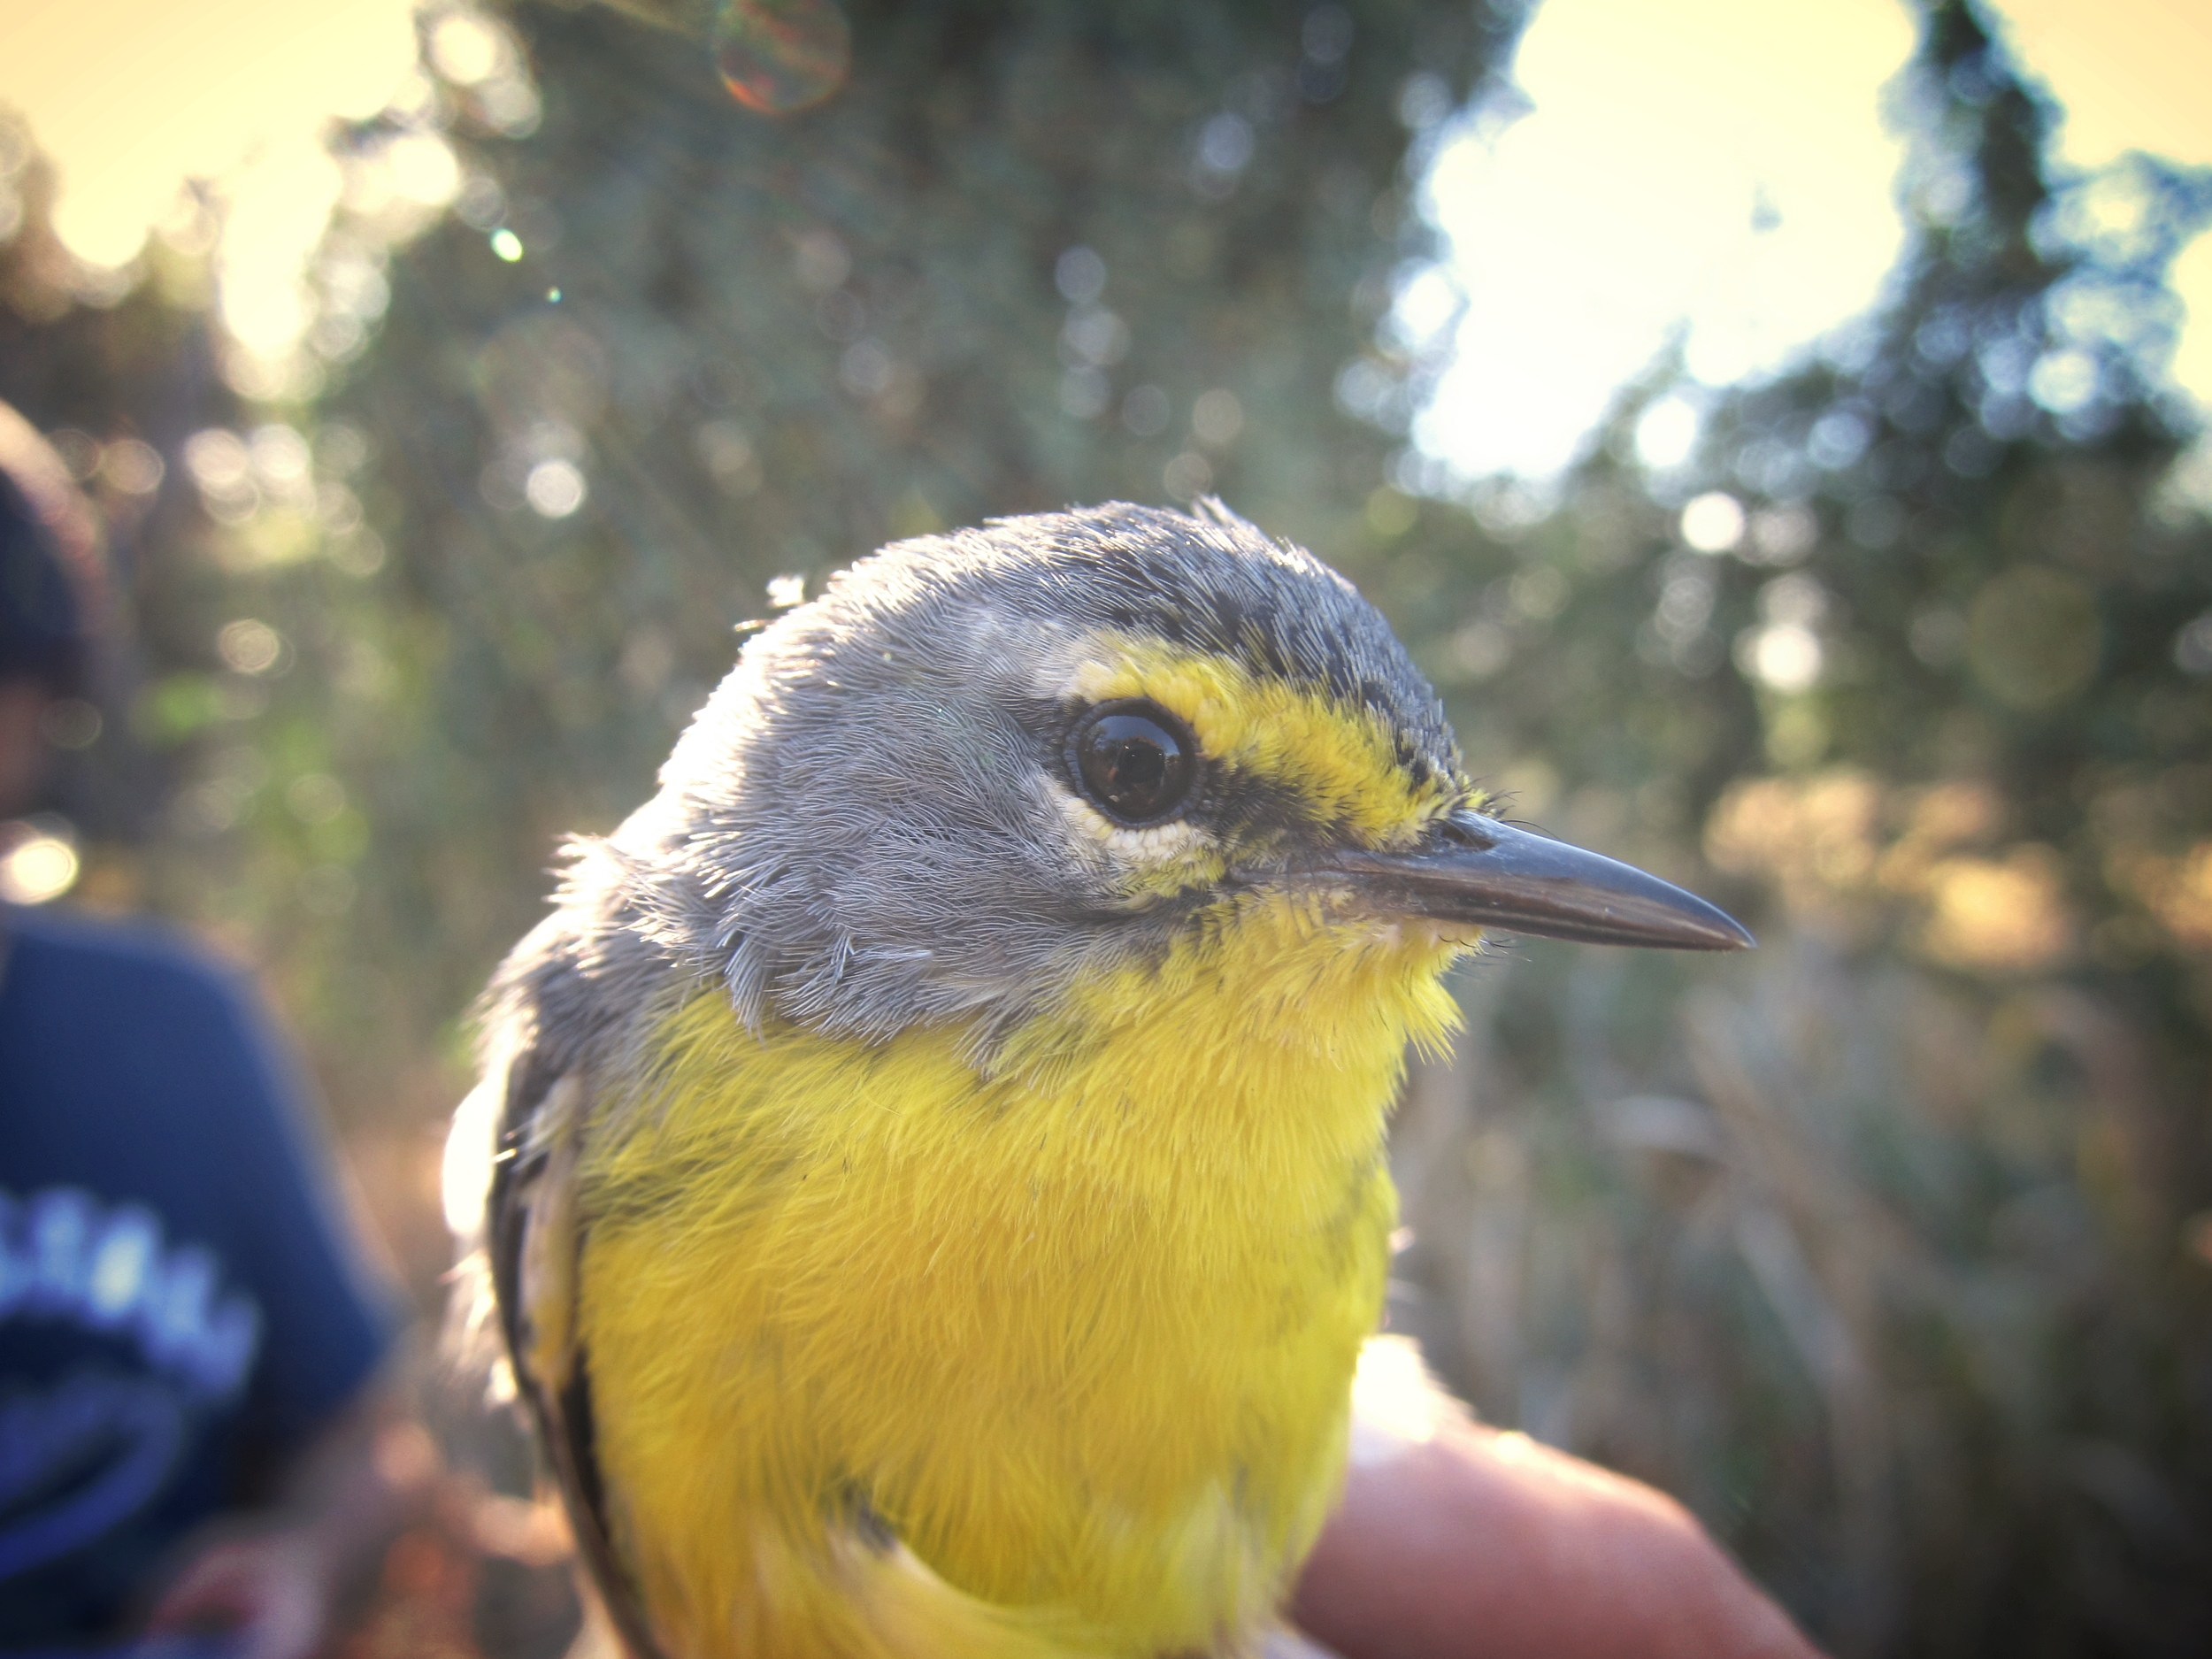 An Adelaide's warbler, held by Orlando Medina.  A unique combination of colored plastic rings on the bird's legs will help us identify him in the future.  Photograph by Orlando Medina.